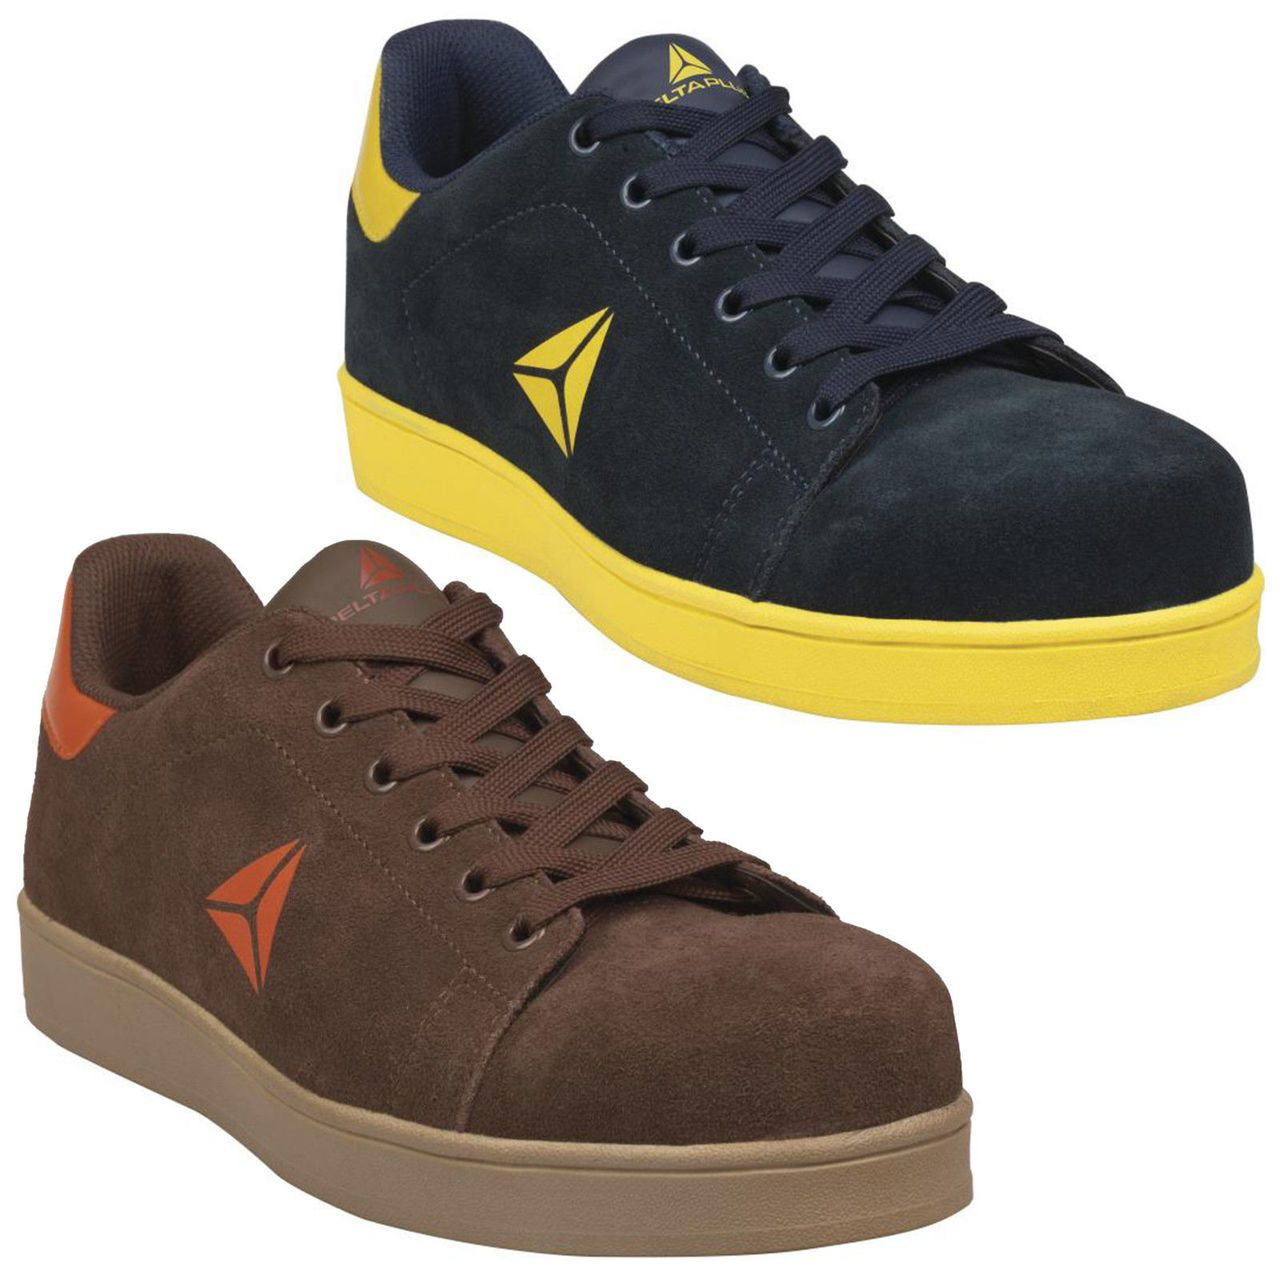 Delta Plus Smash Mens Lace Up Safety Composite Toe Midsole Trainer Available In Sizes 7 11 Http Www Shoestationdirect C Safety Shoes Shoes Mens Women Shoes